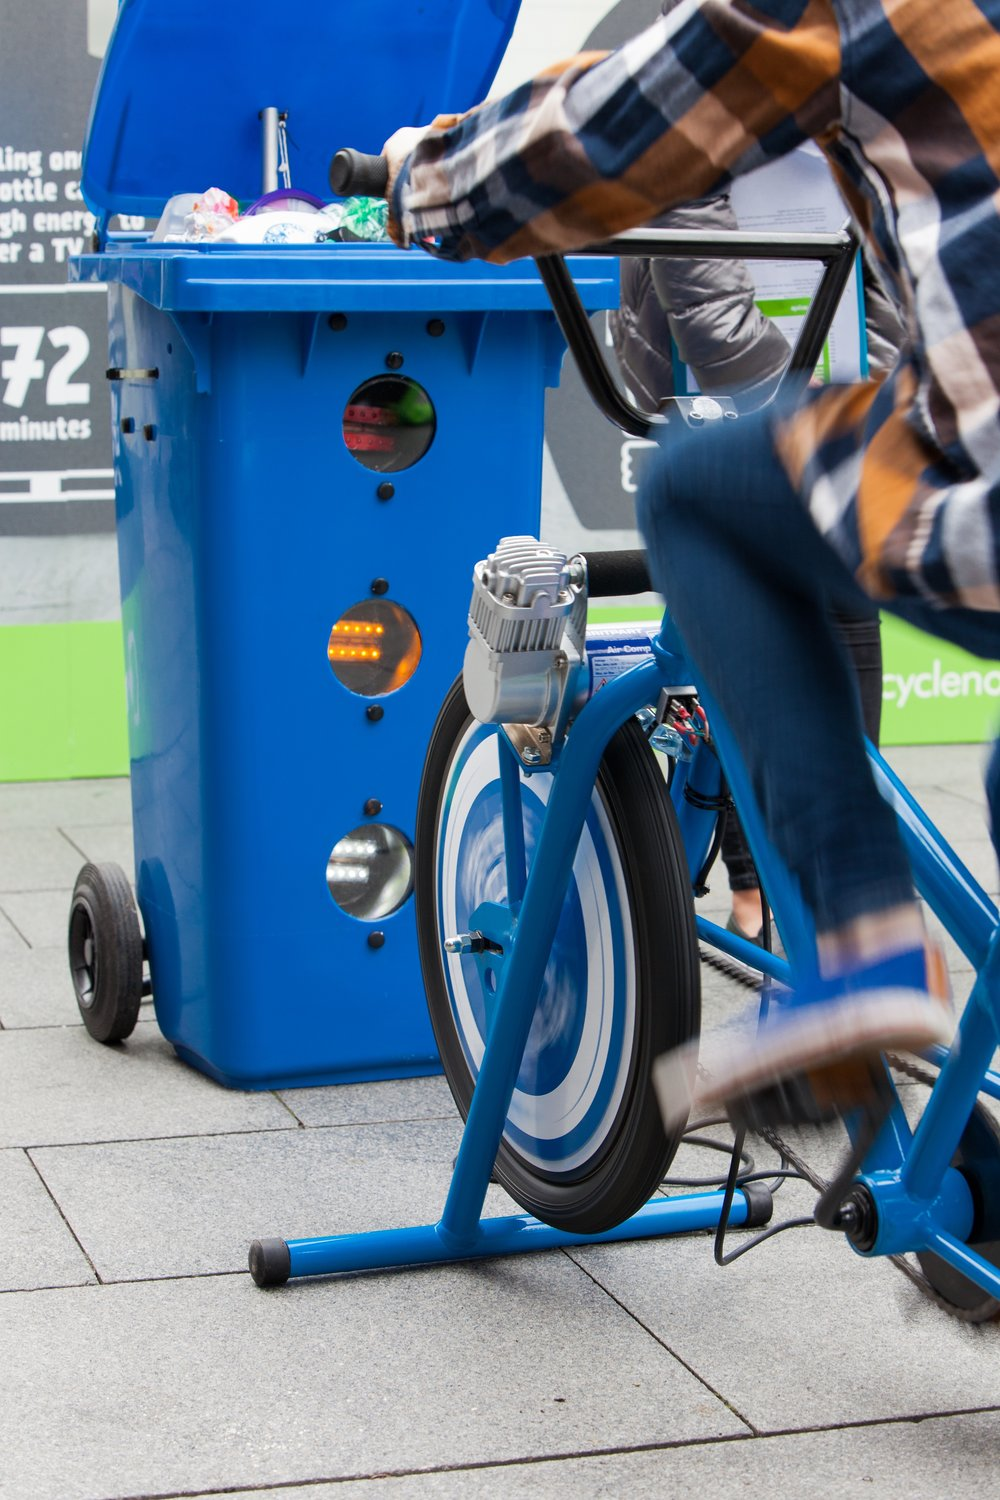 leeds_commercial_events_photographer_james_arnold_jarnold_Recycle_Now_Sheffield_0027.jpg